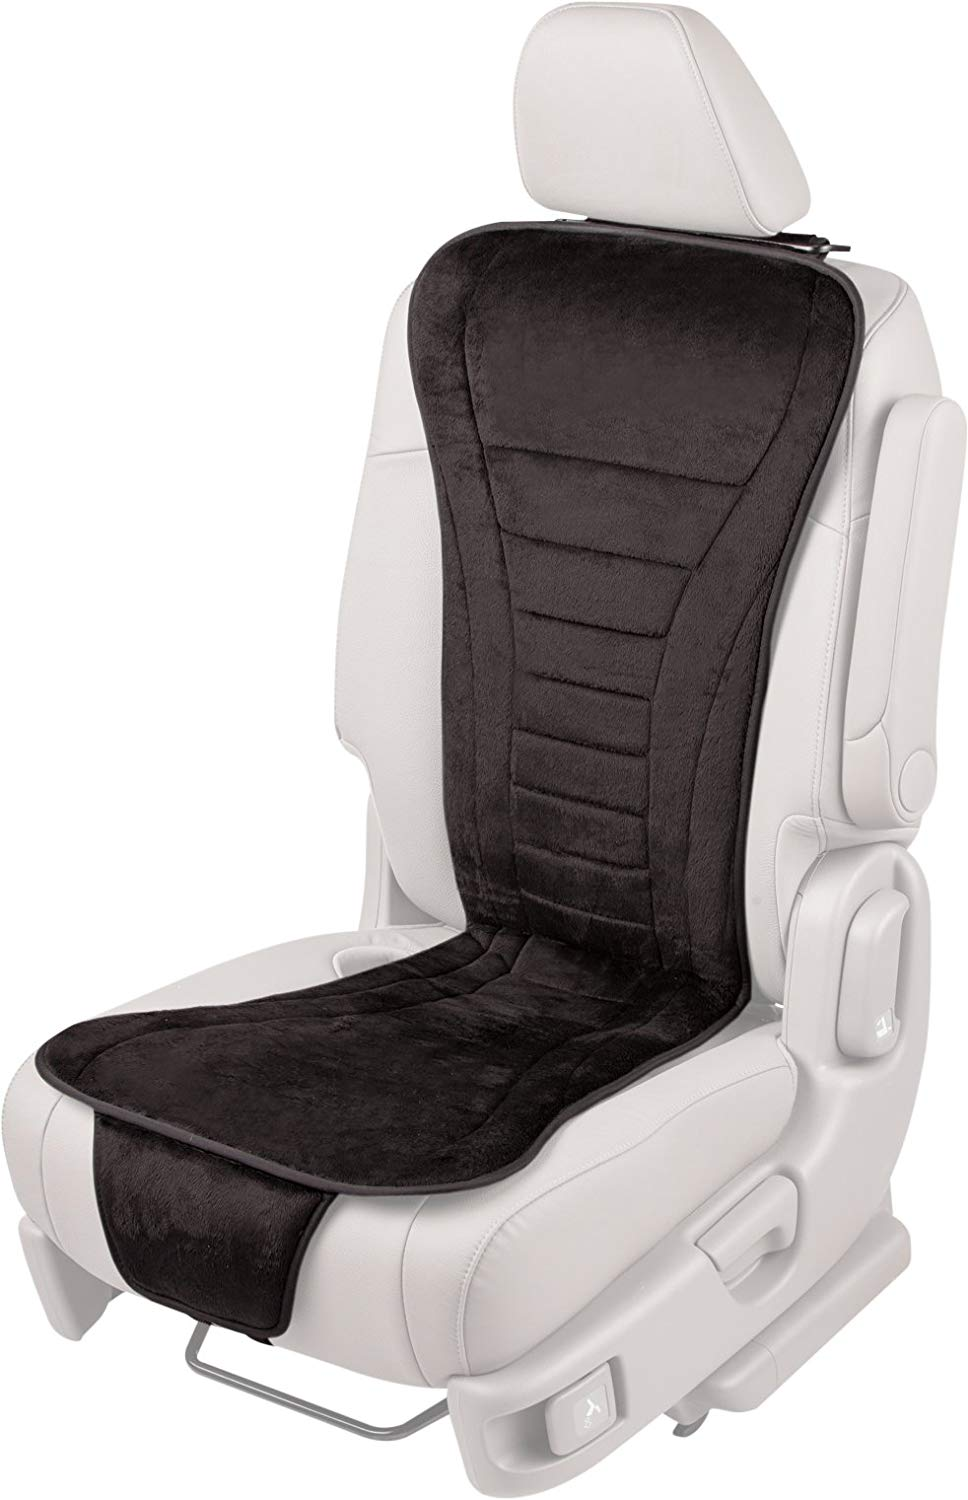 35096 - AirFlex lumbar car seat cushions Europe